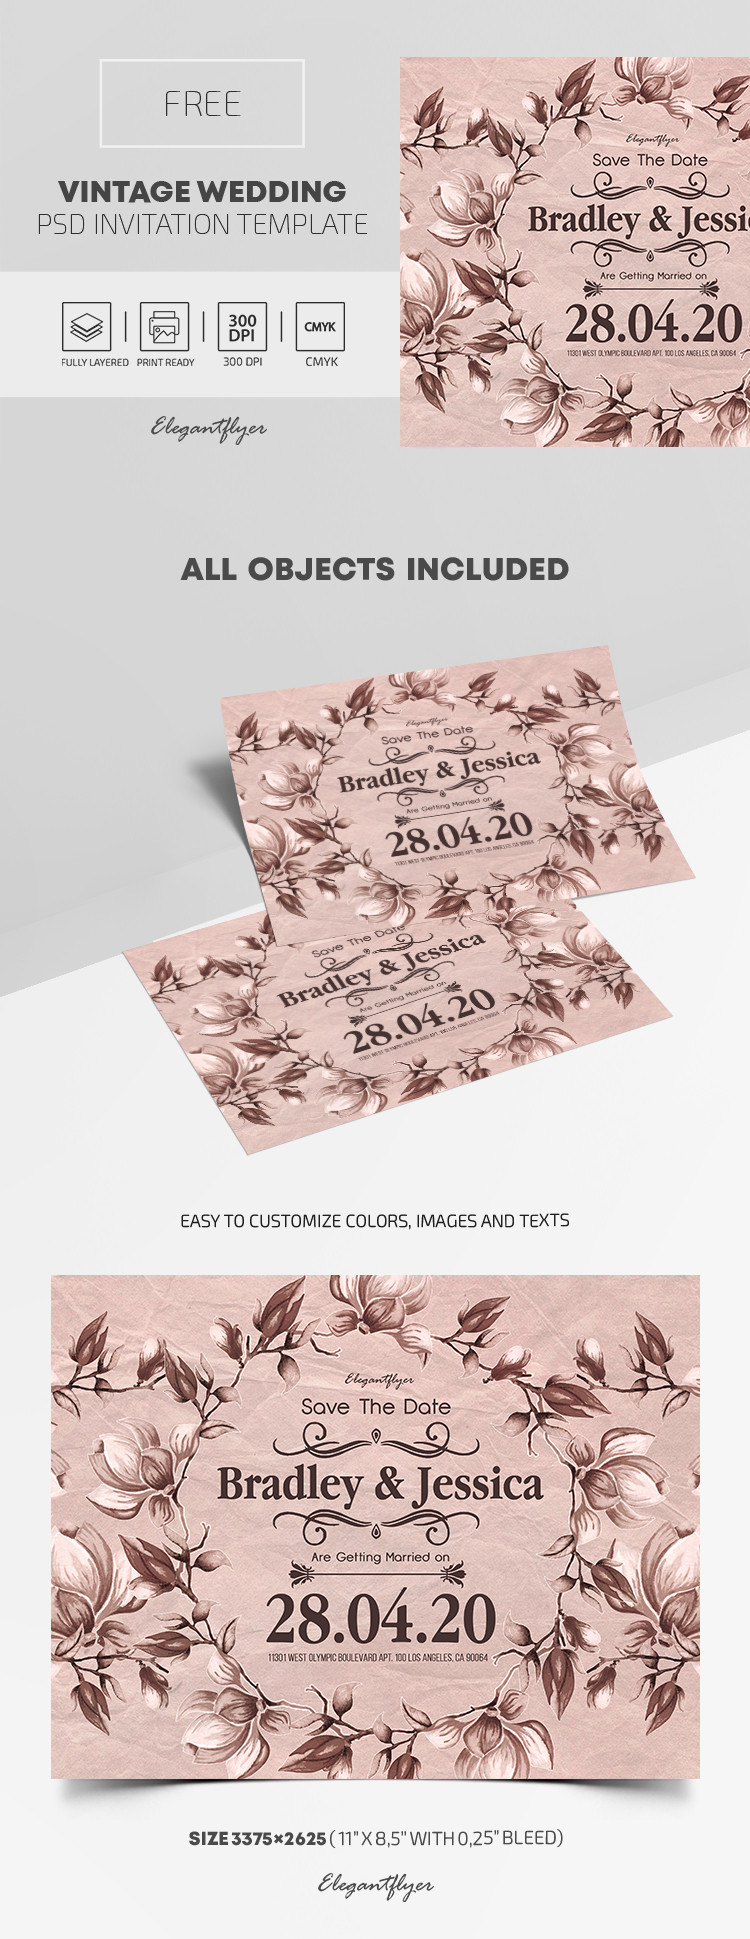 Vintage Wedding – Free PSD Invite Template